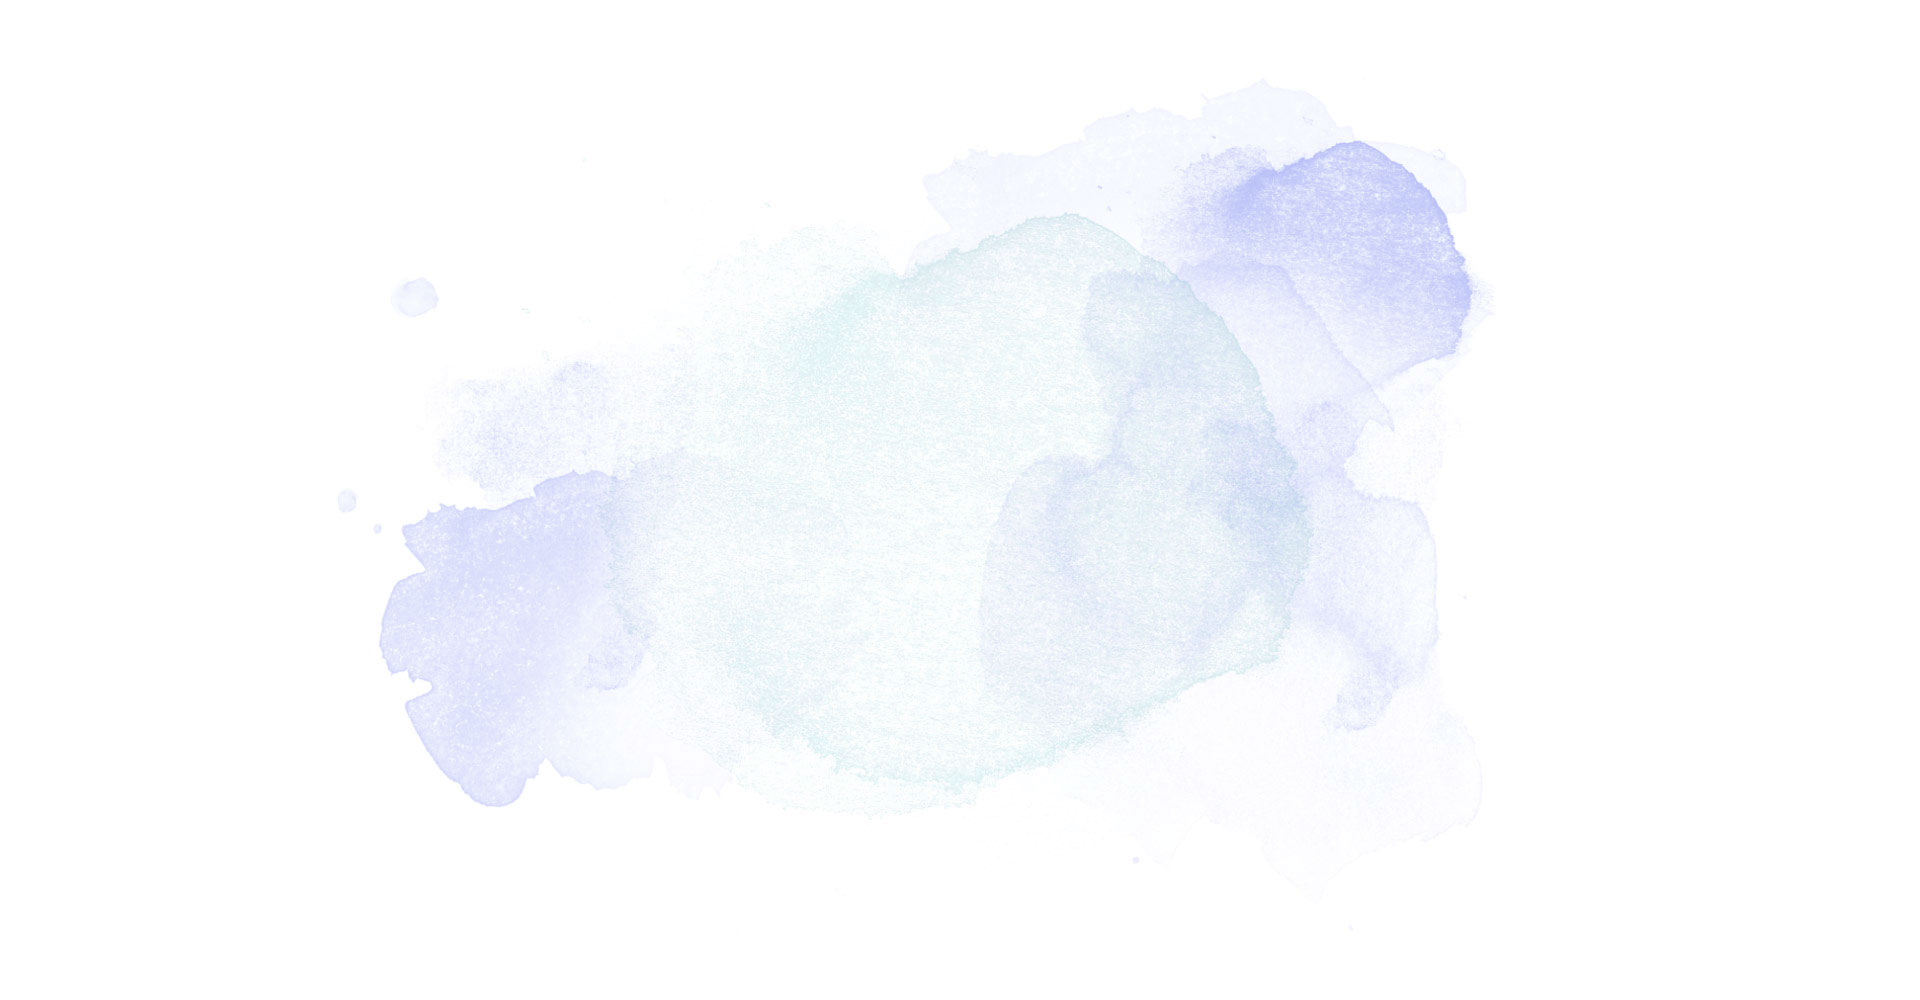 watercolorbanner